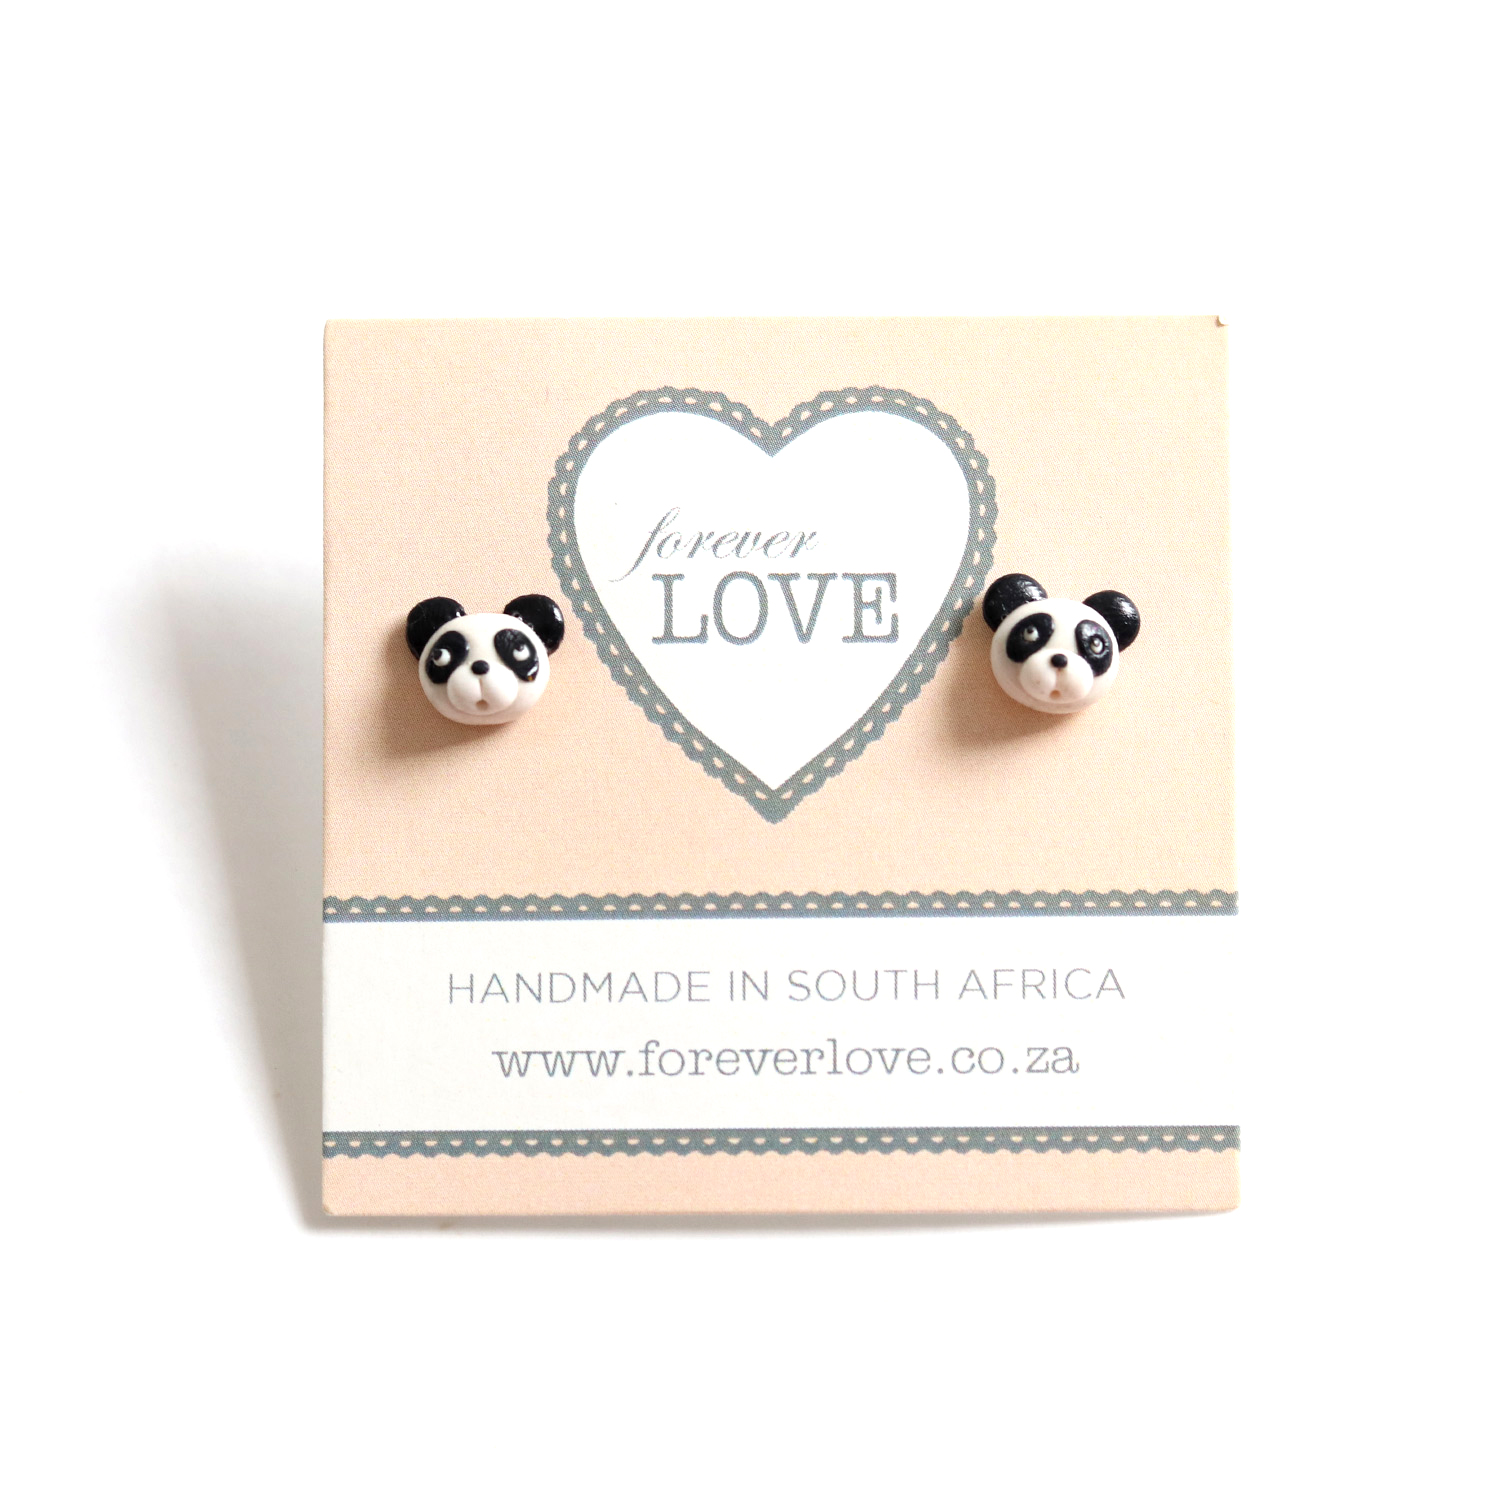 These totally adorable panda studs and unique handmade from polymer clay.